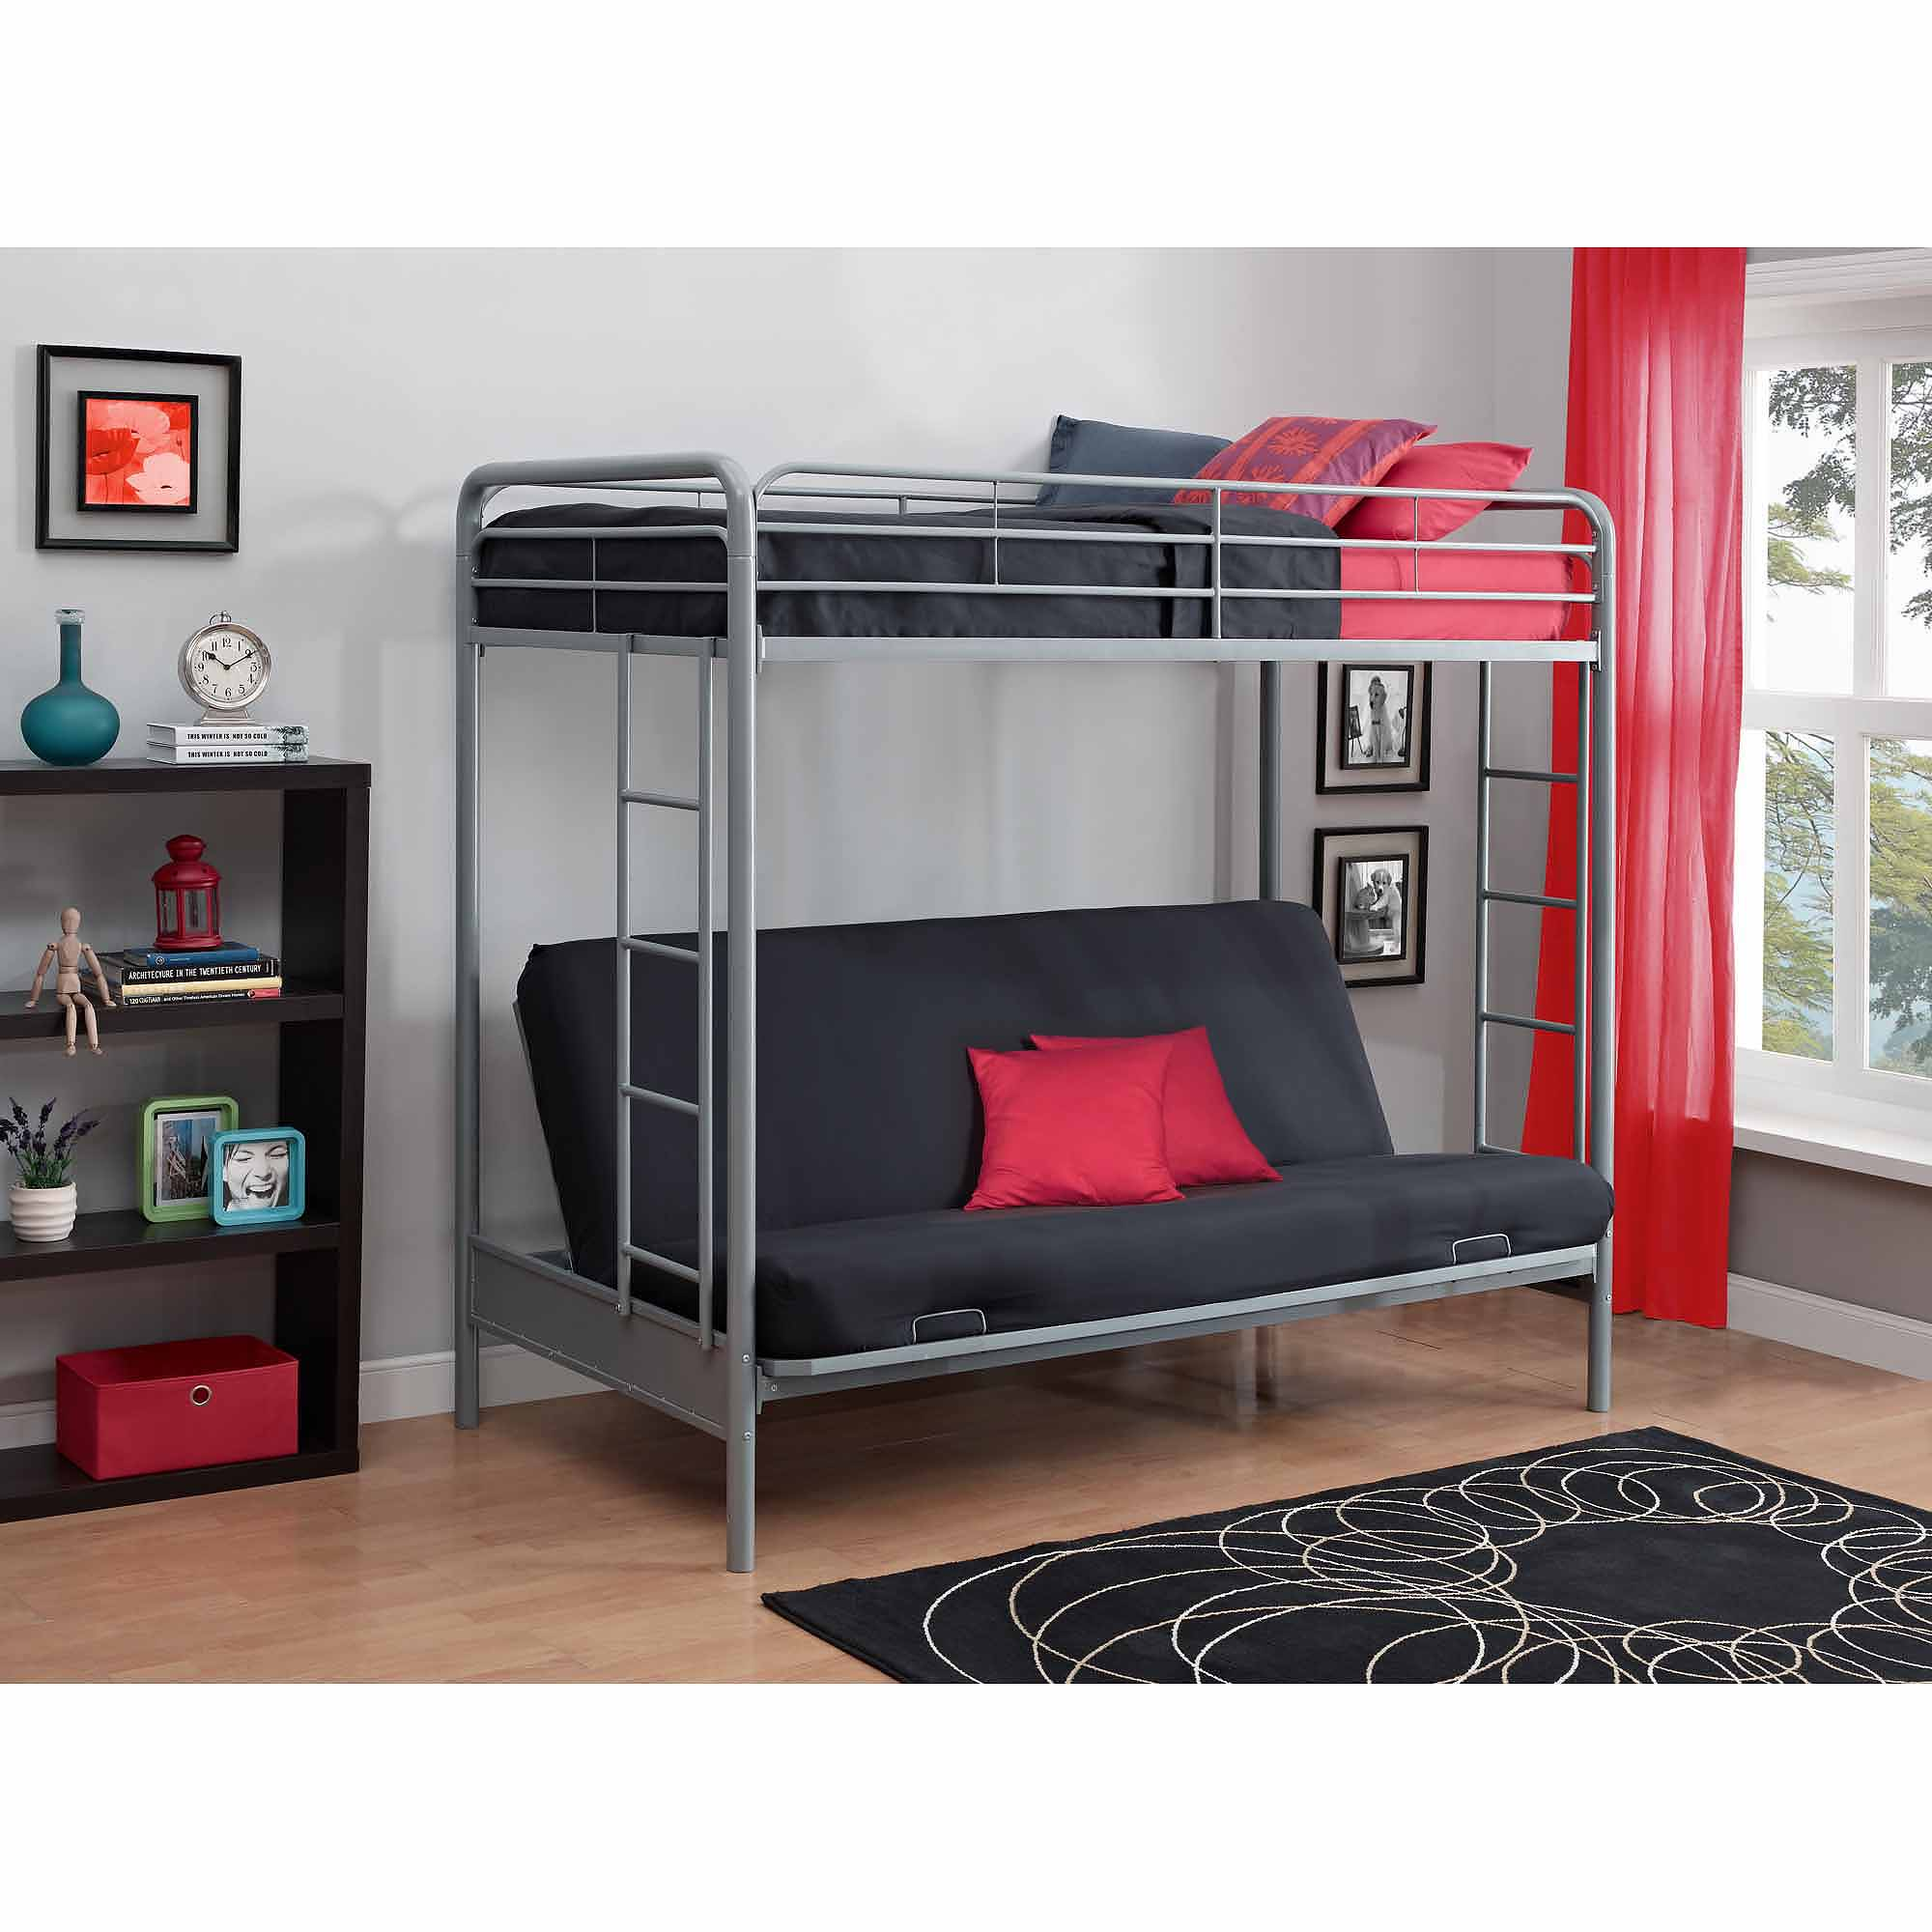 Bunk bed with couch on bottom - Dorel Home Products Twin Over Futon Low Loft Bed With Built In Ladder Walmart Com